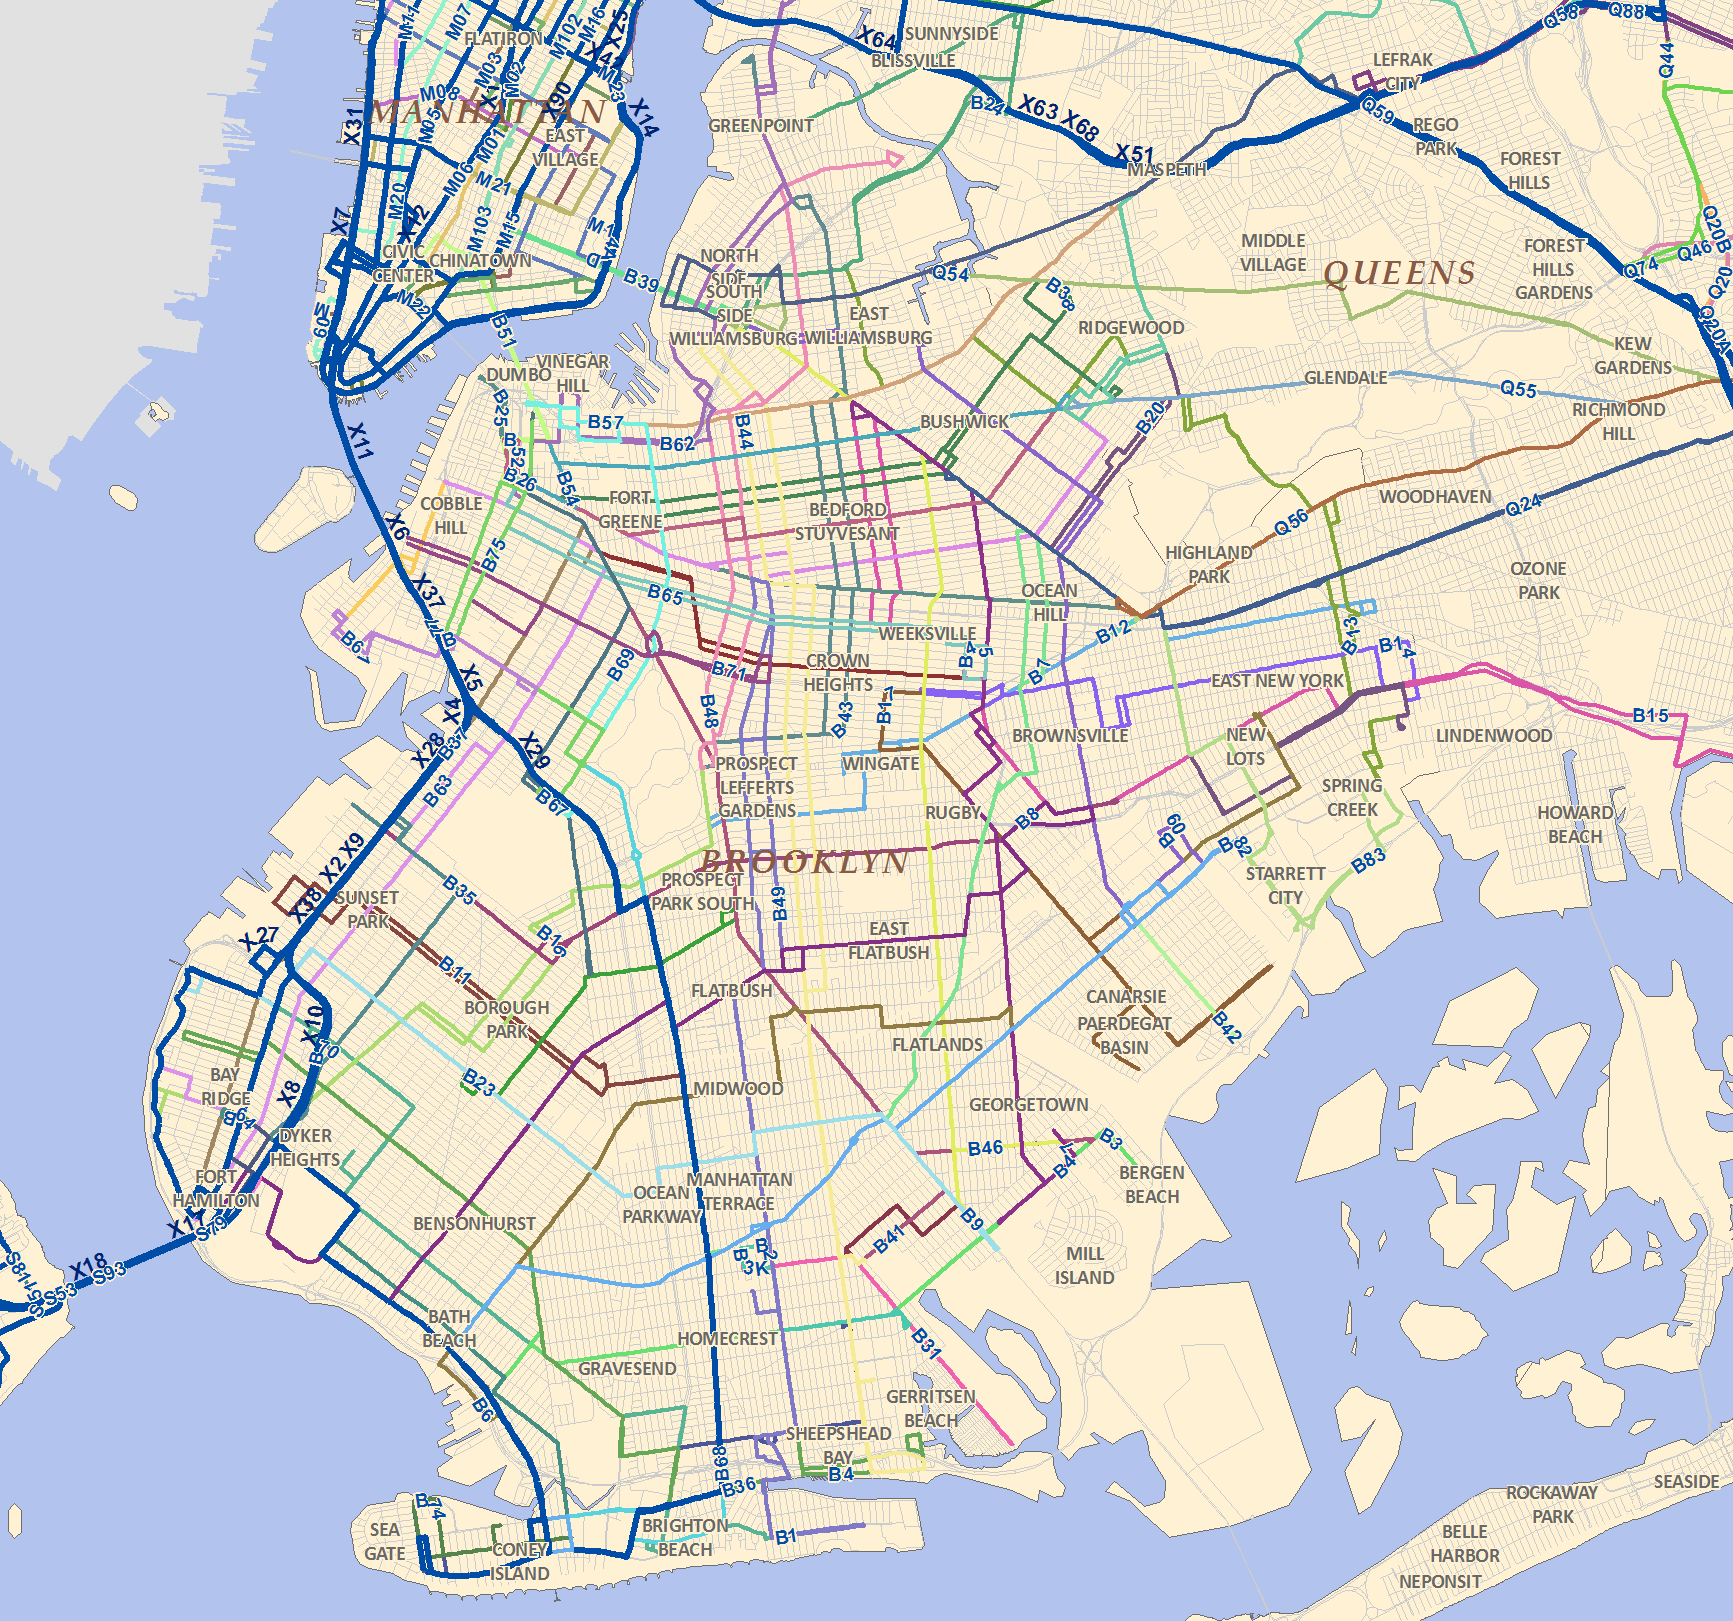 MTA data opened up provided here in GIS format Spatiality